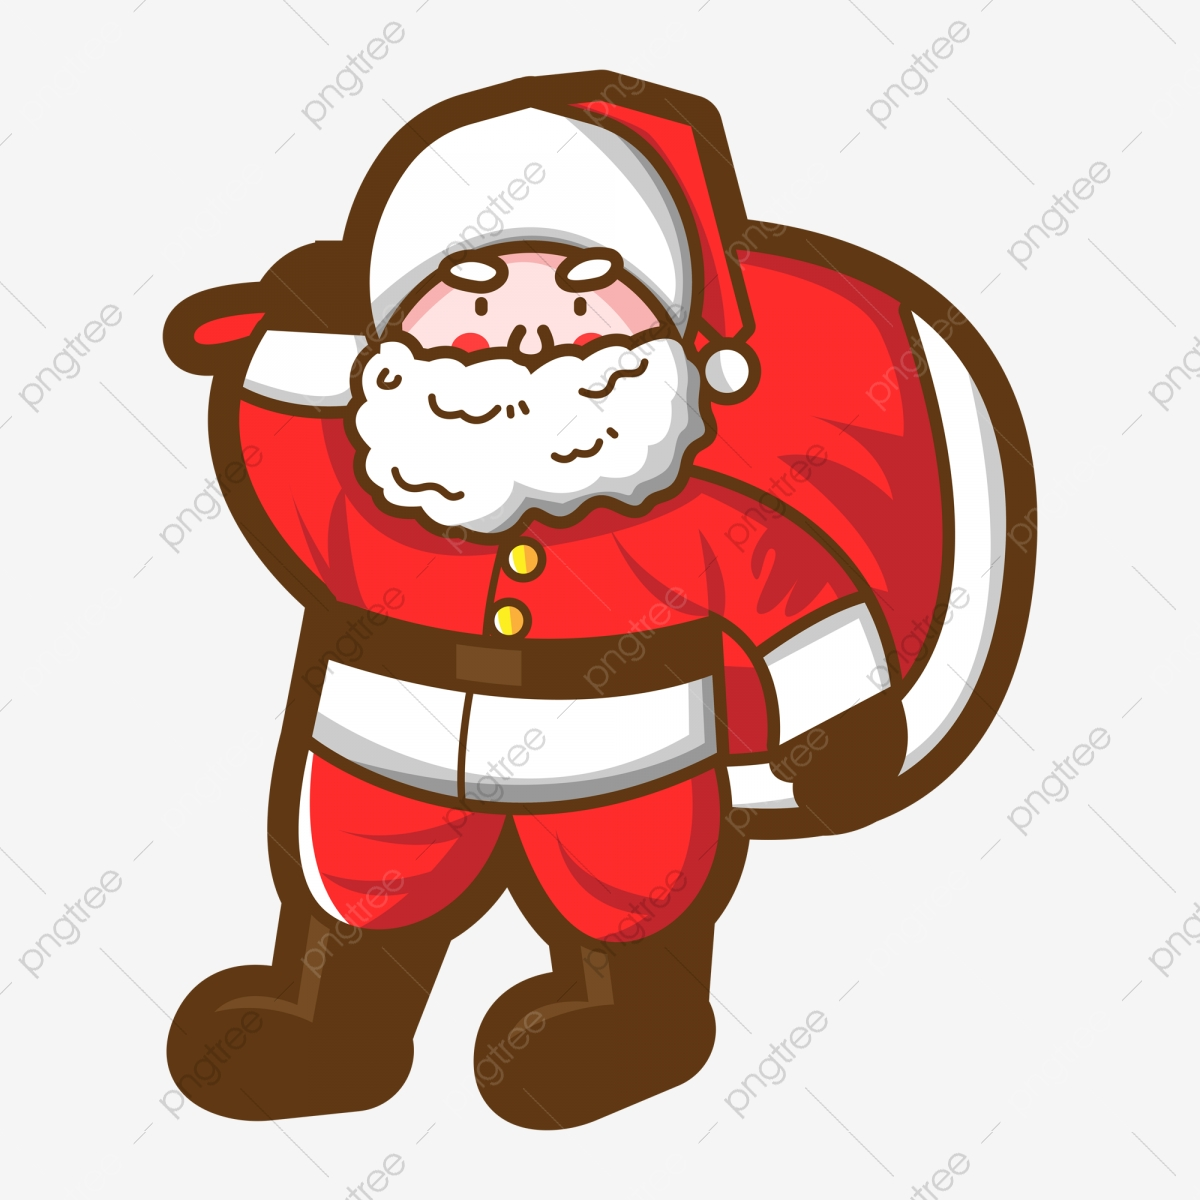 Santa Claus, Santa Clipart, Creative Christmas PNG Transparent.